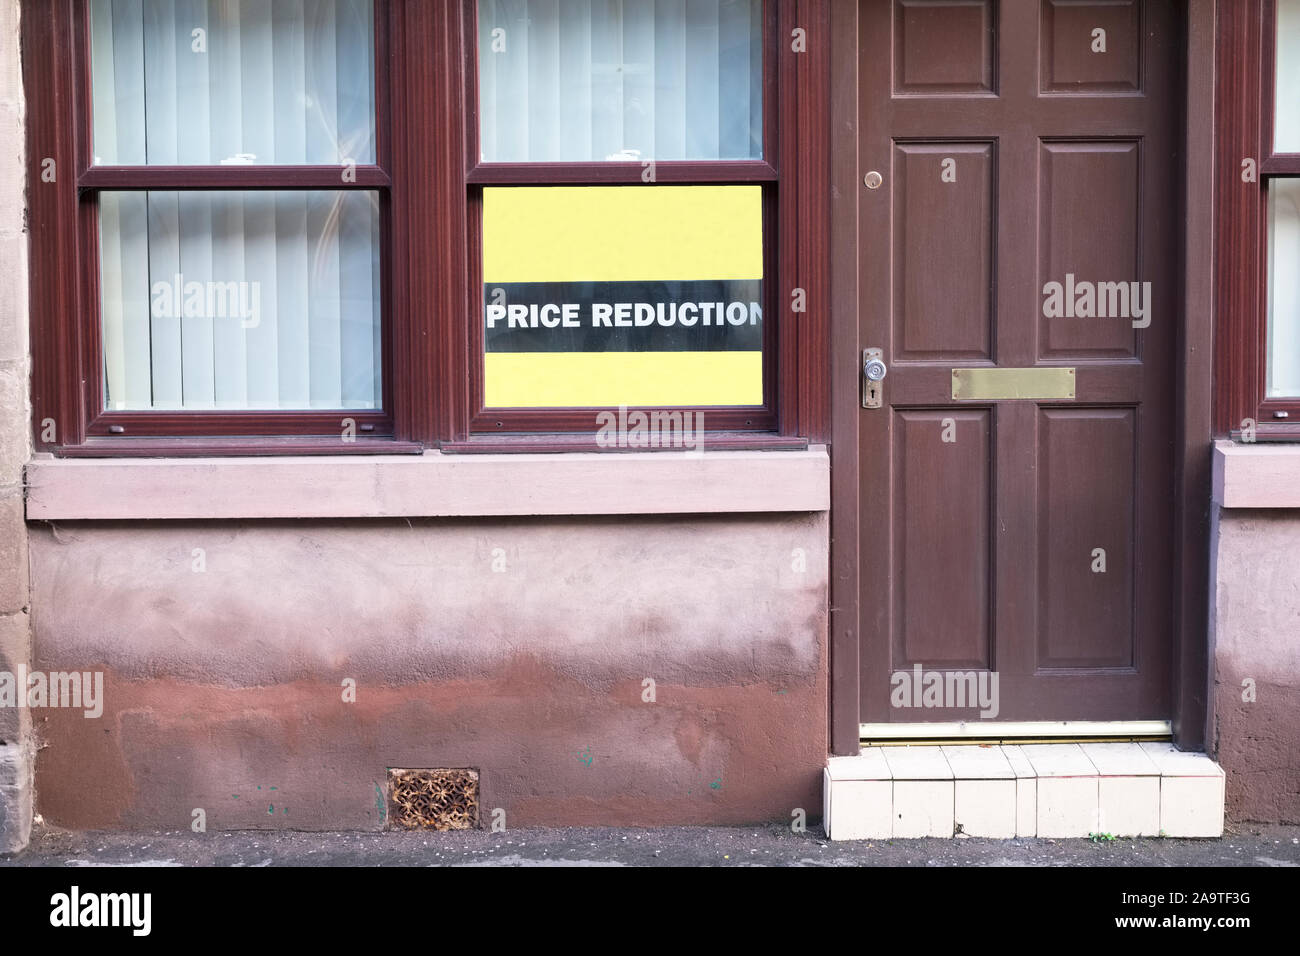 House price reduction in poor council town with population in decline Stock Photo